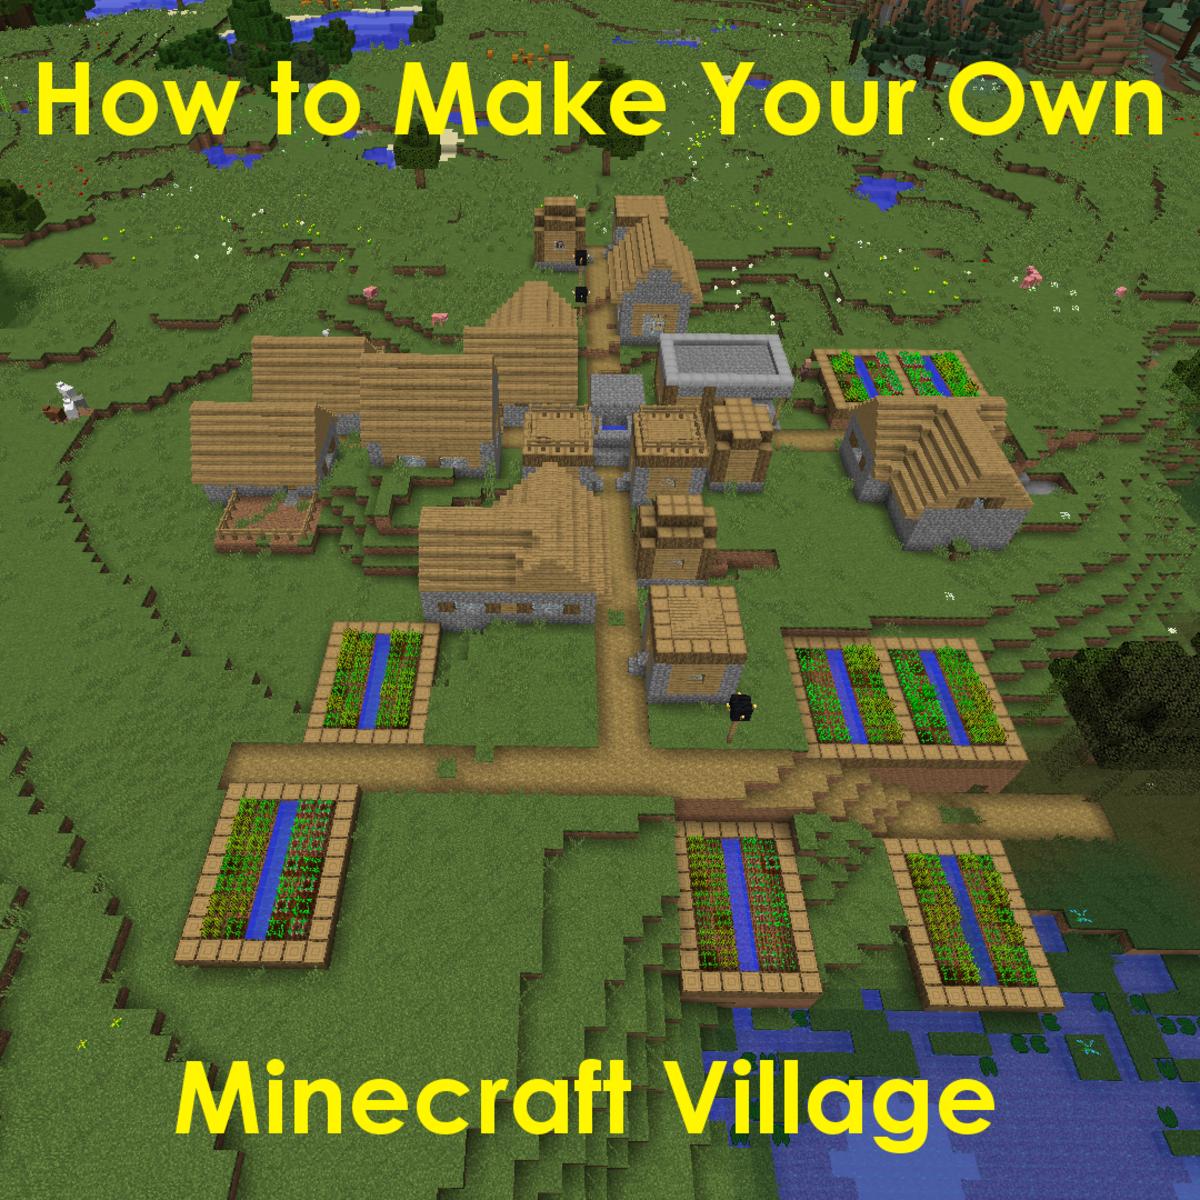 How to make your own village in minecraft levelskip for Design your own farm layout